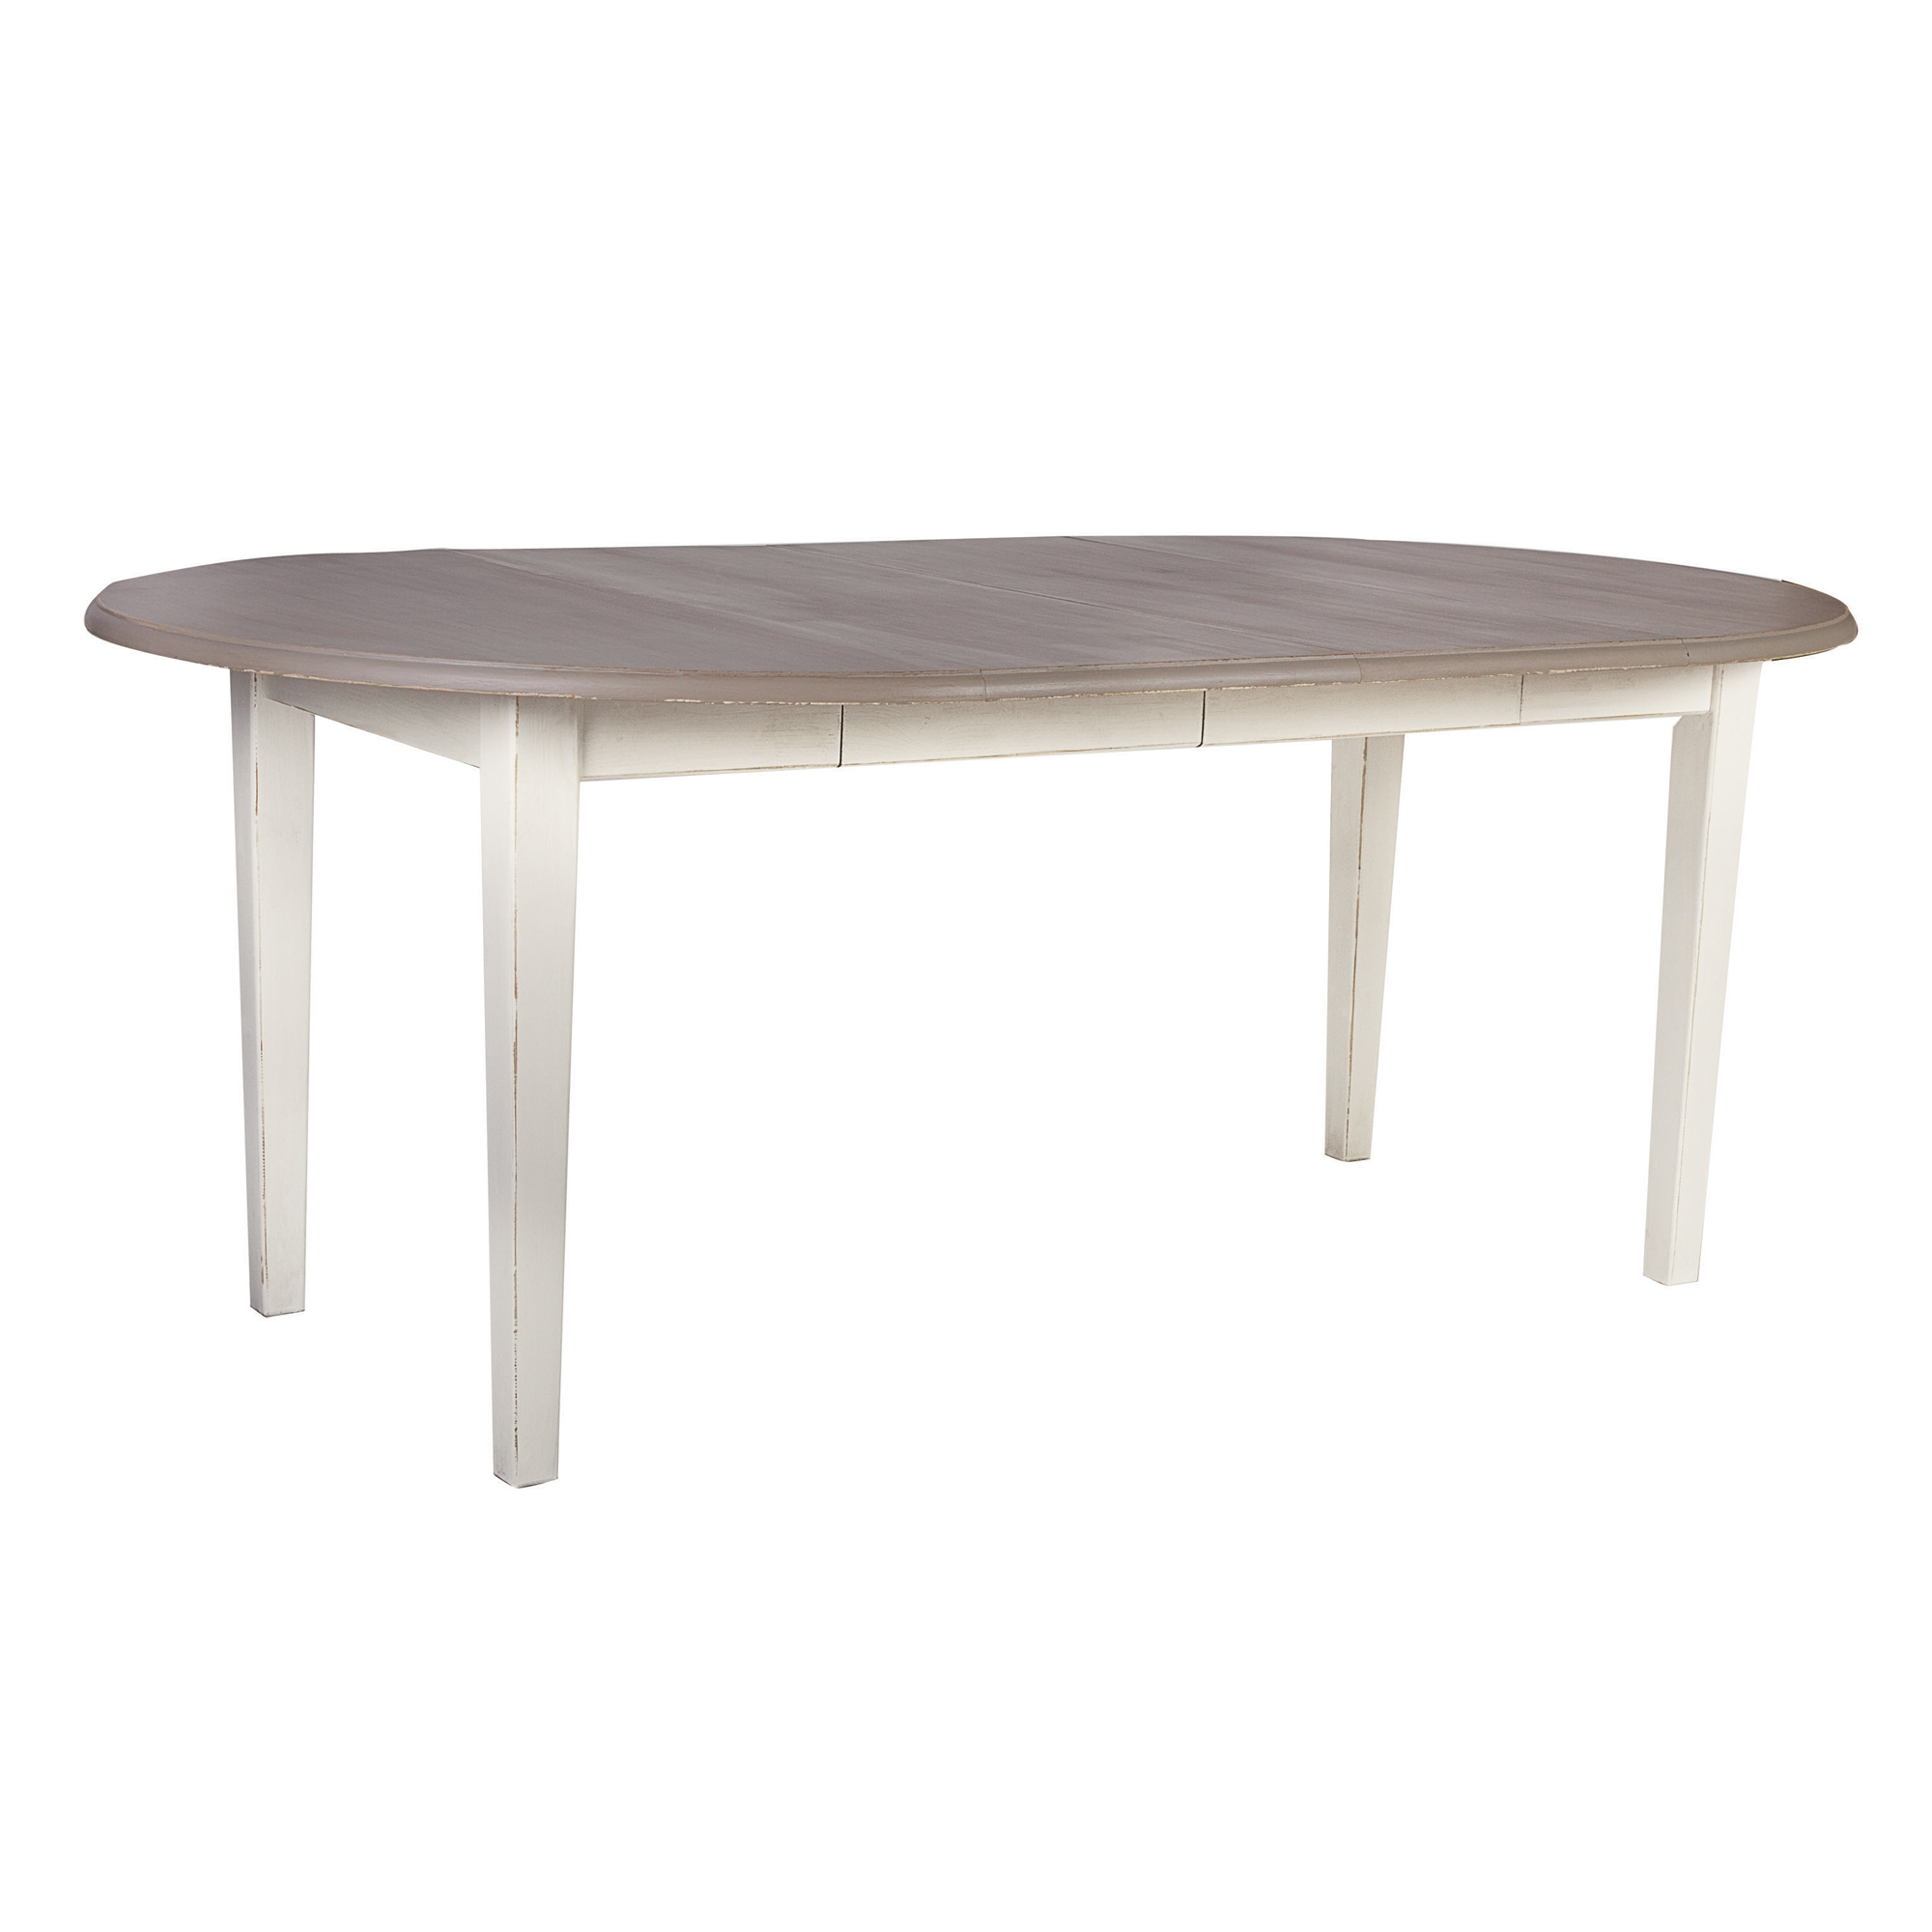 French Extending Round Table